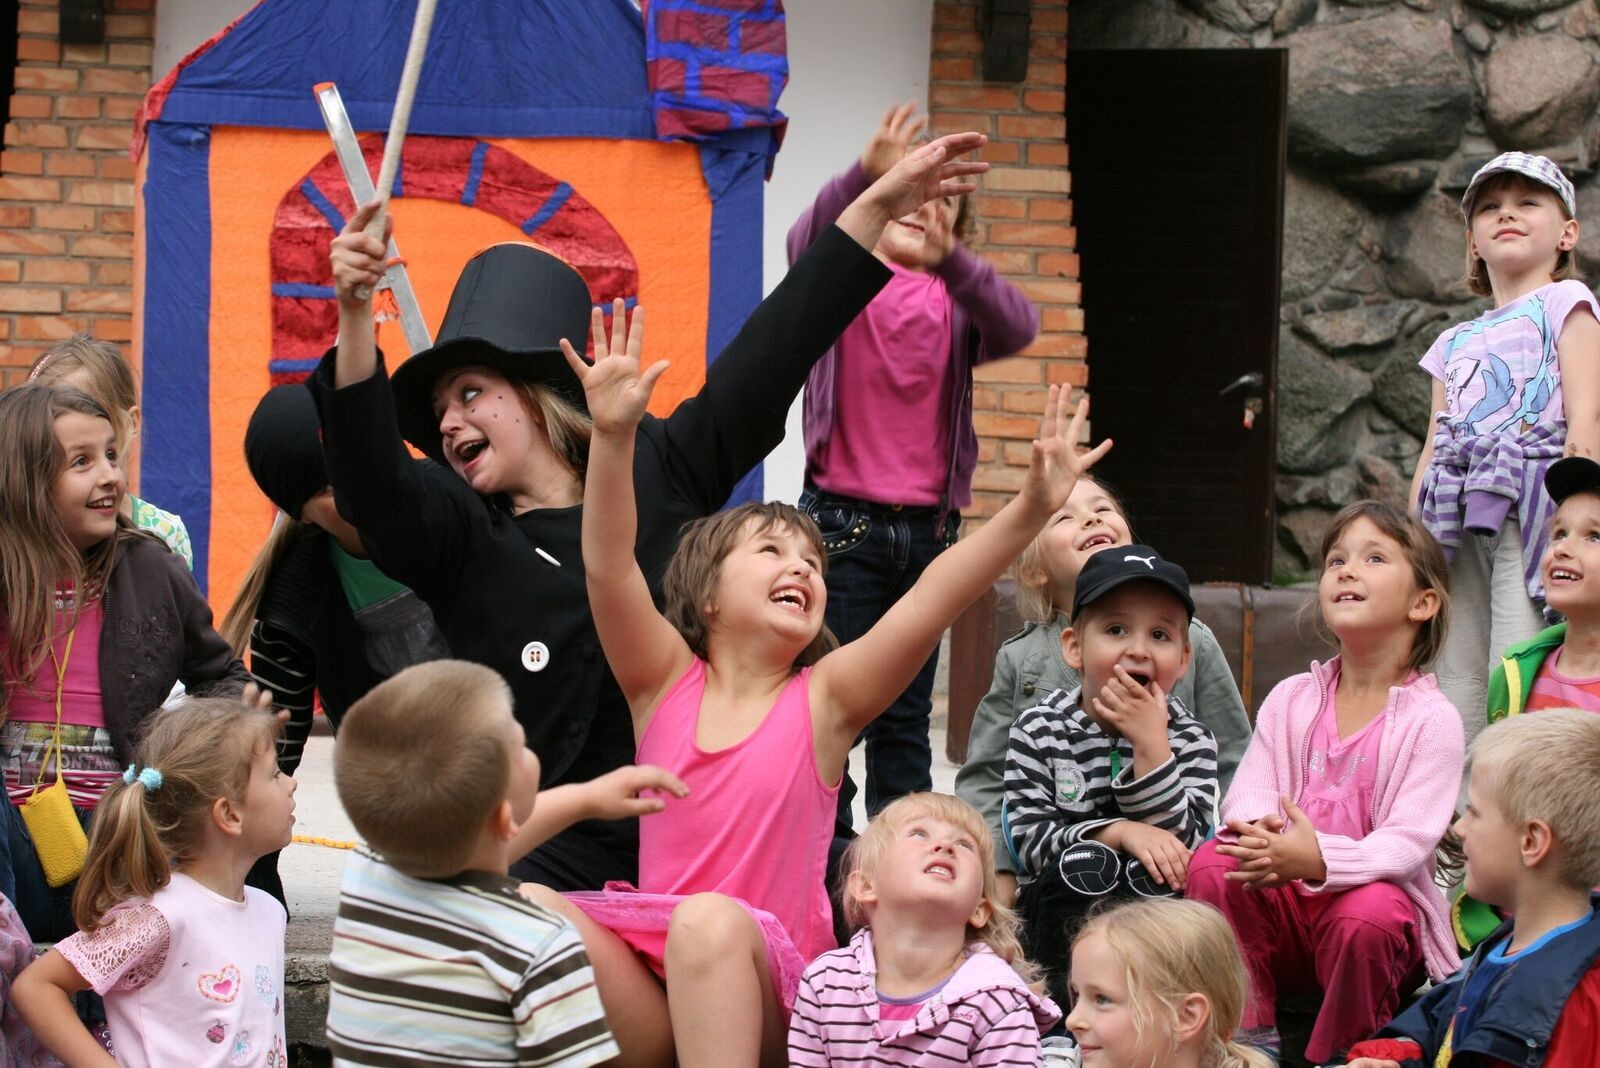 Stimulating Urban Culture: Amateur and Street Theater in Europe's Cities